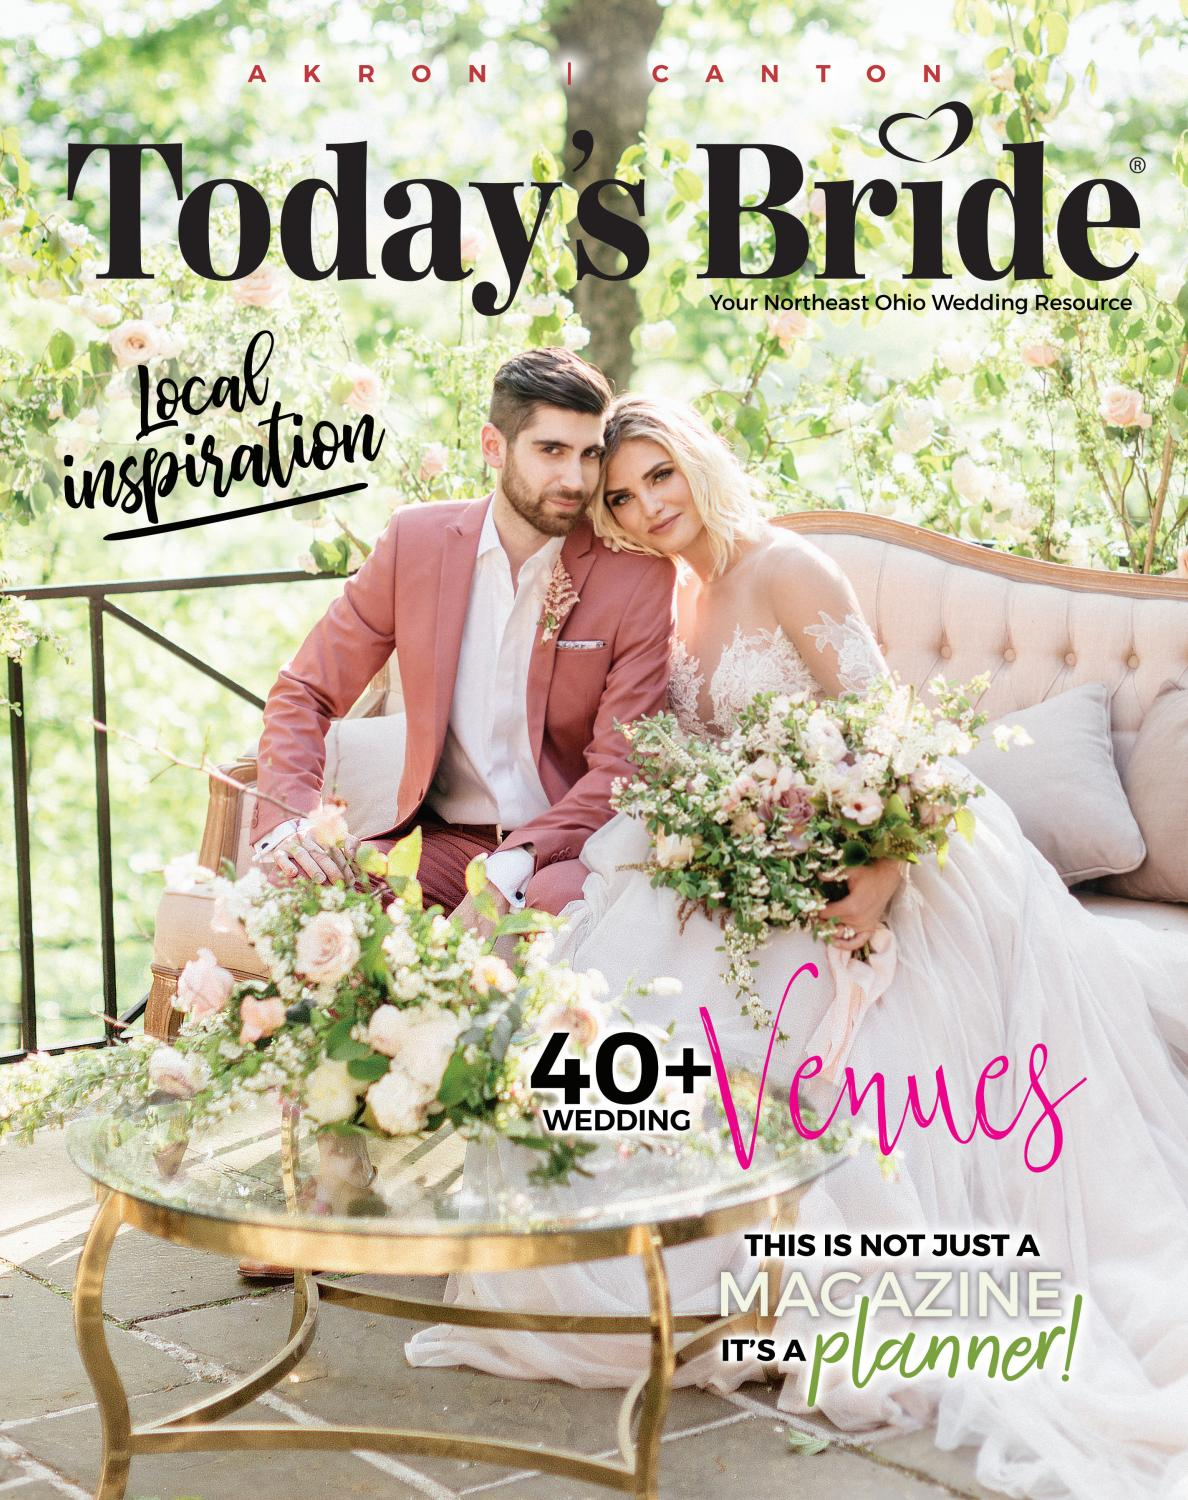 Today S Bride 2018 2019 Akron Canton By Today S Bride Magazine